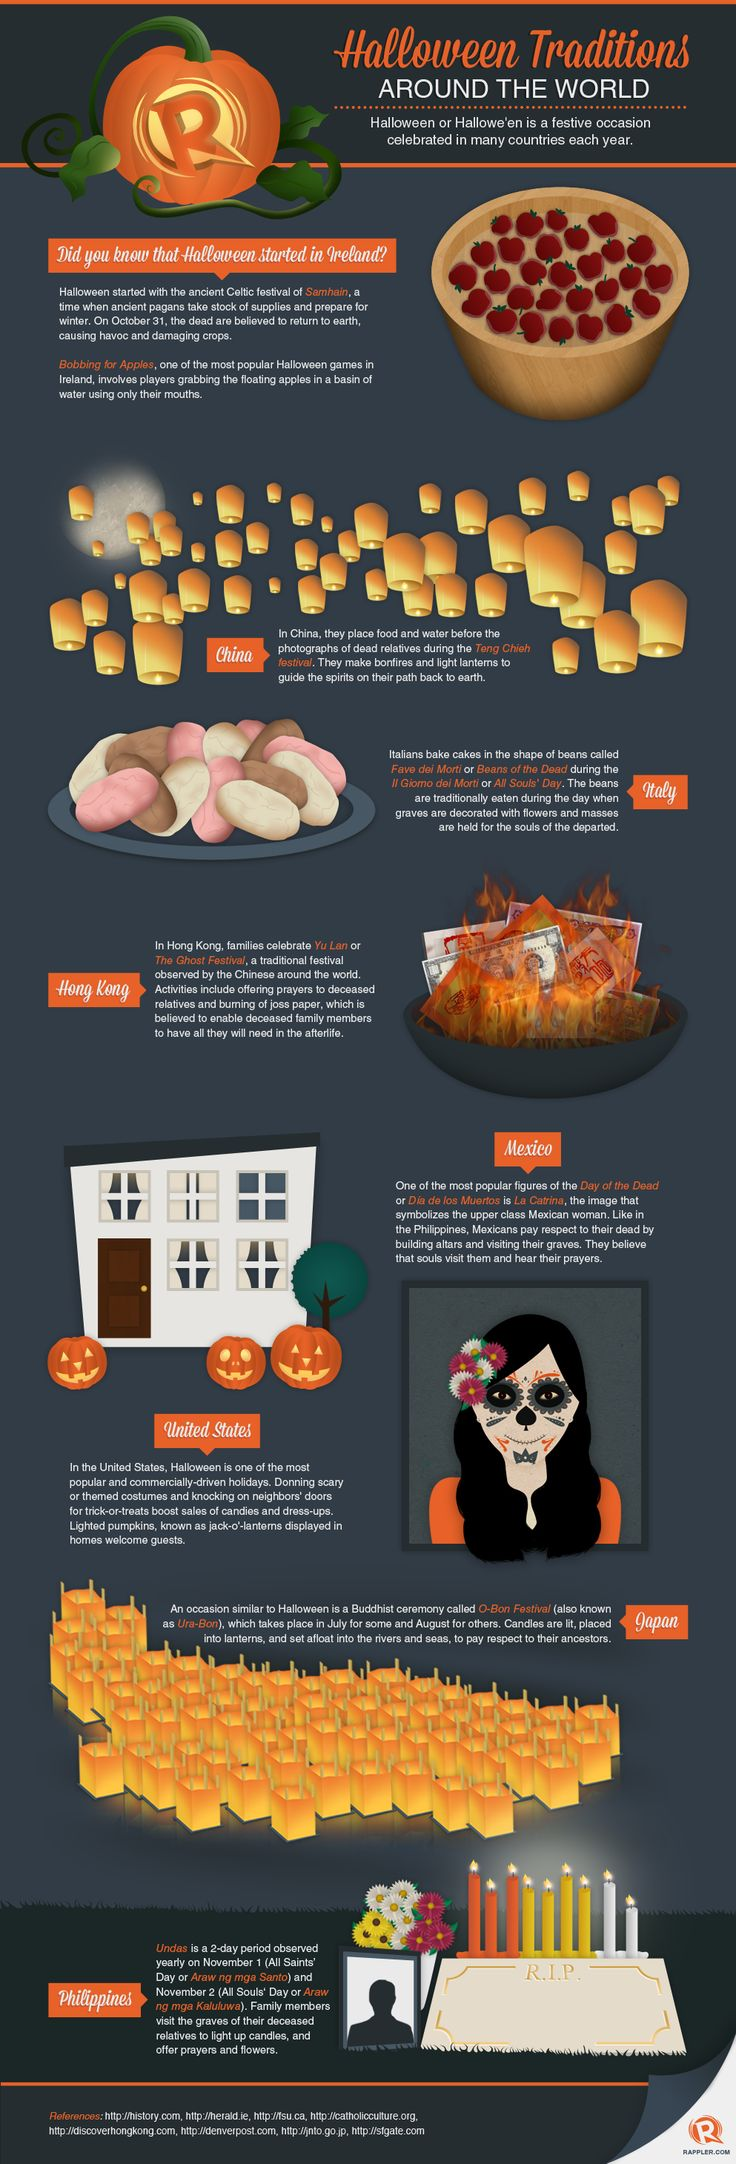 Fun #infographic for kids about the history of Halloween and how it's celebrated today in countries around the world, including China, Italy and Mexico!